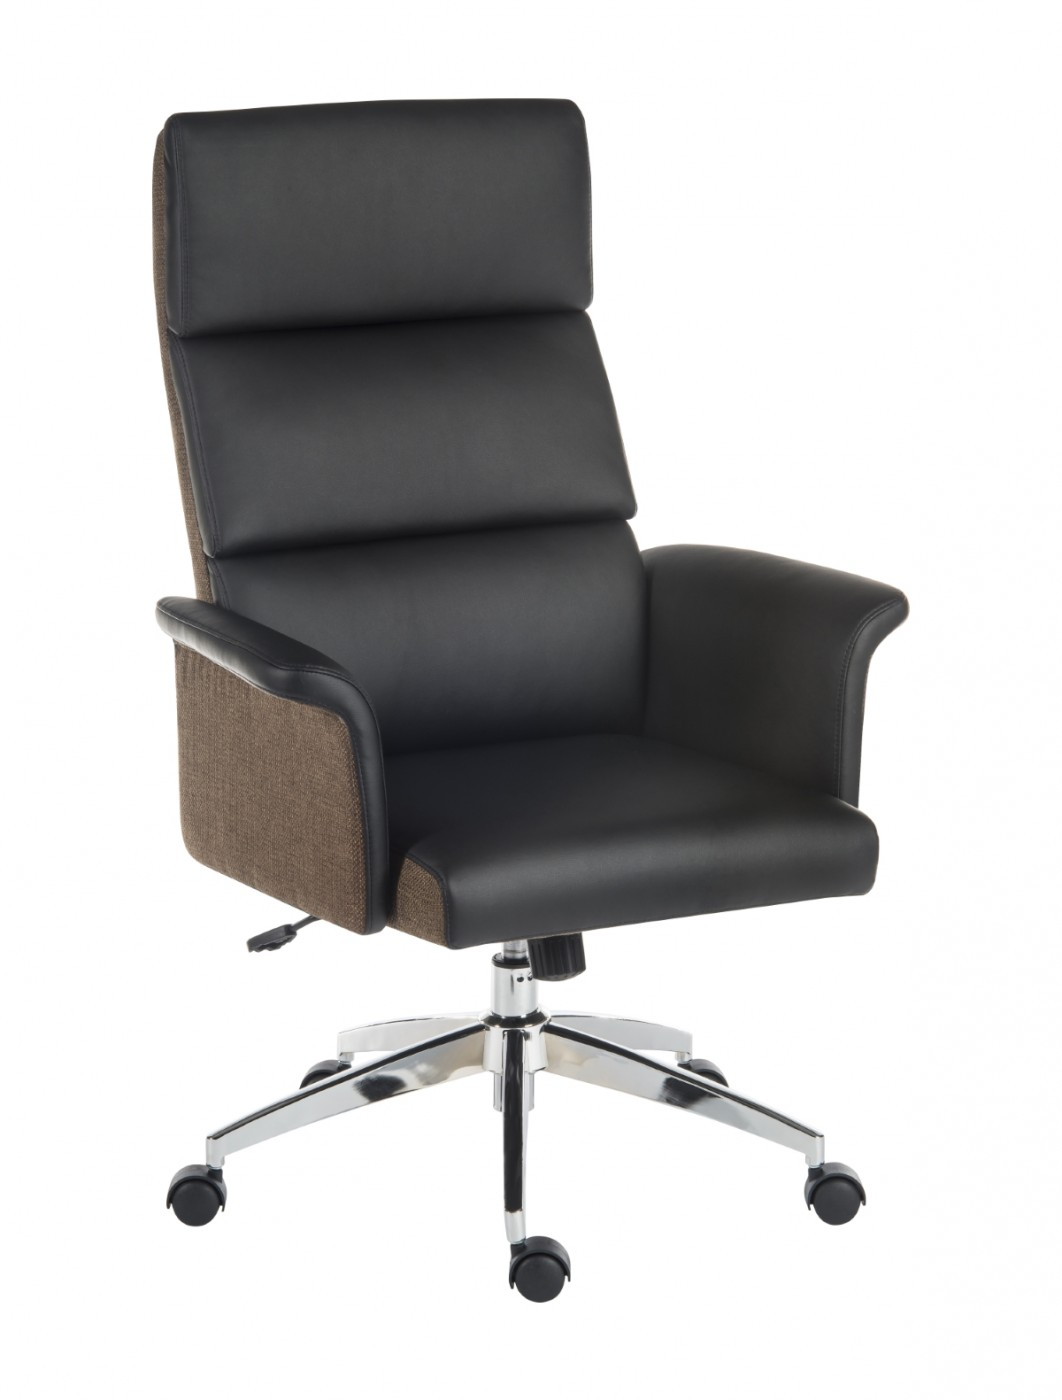 Executive Chair Office Chairs Teknik Elegance High Back Executive Office